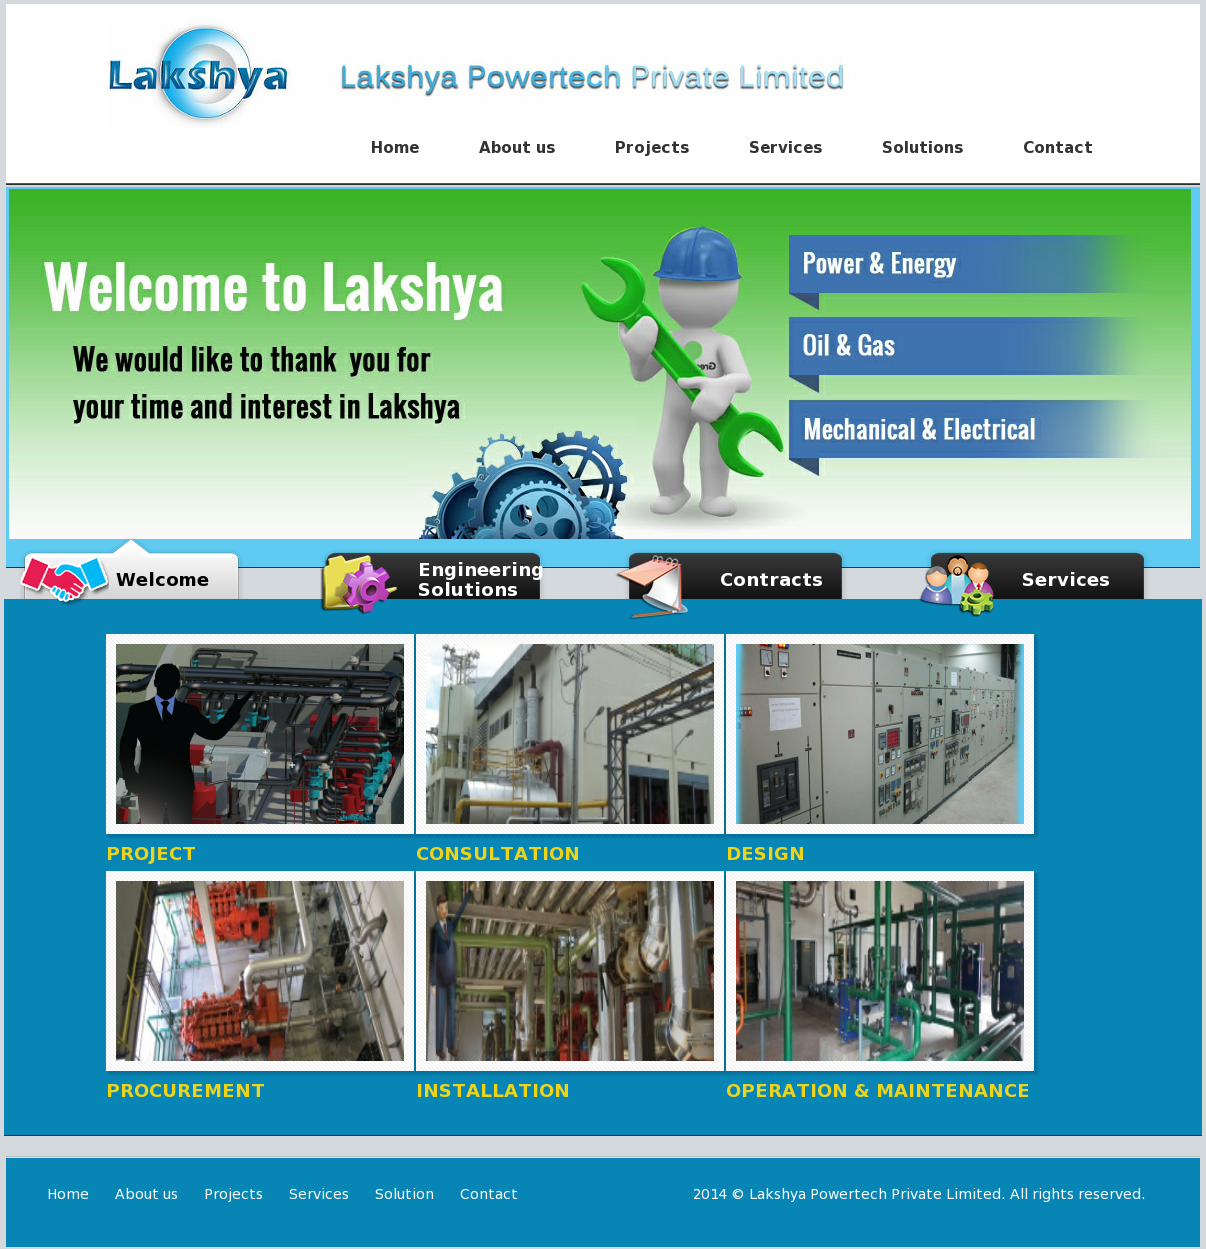 Lakshya Powertech Competitors, Revenue and Employees - Owler